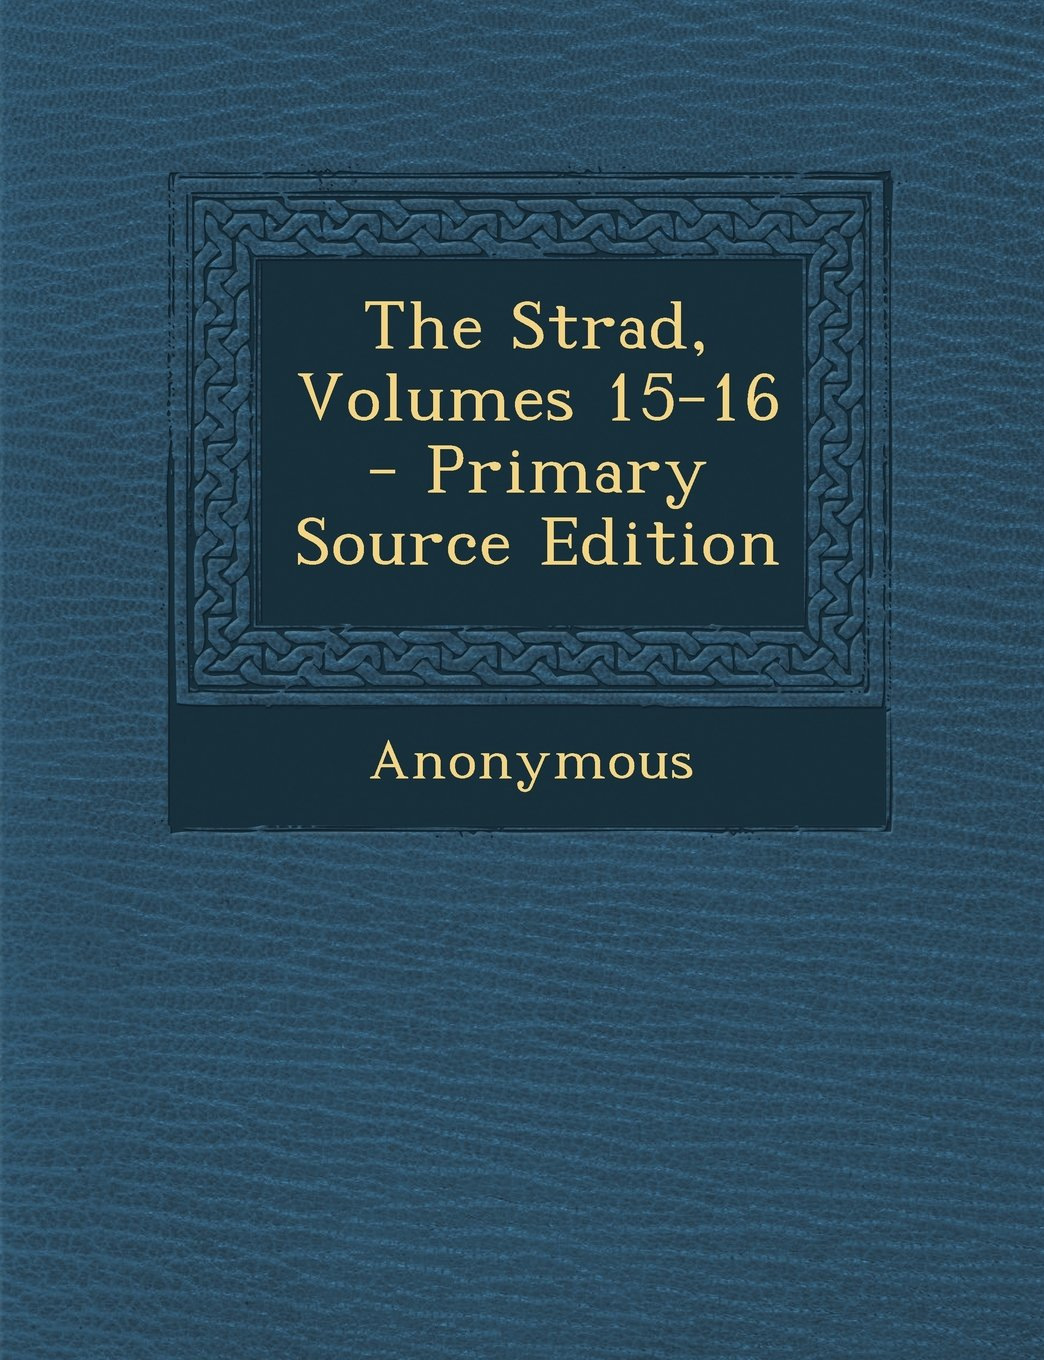 Download The Strad, Volumes 15-16 PDF